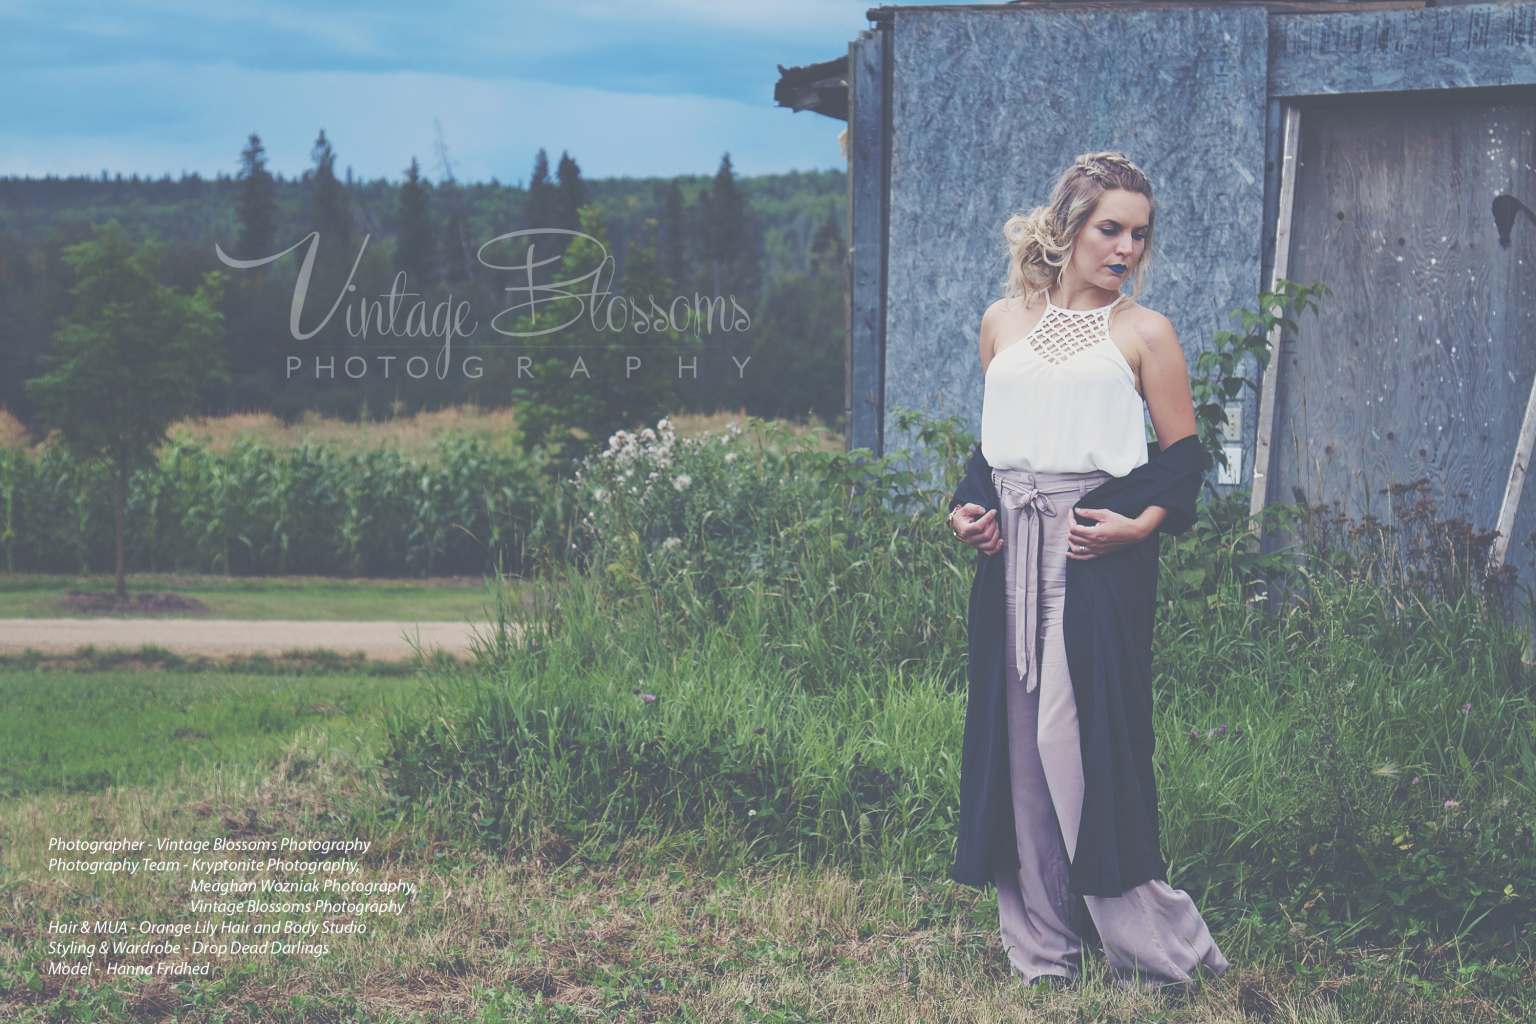 Vintage Blossoms Photography - Vanessa WannerstromFort McMurray